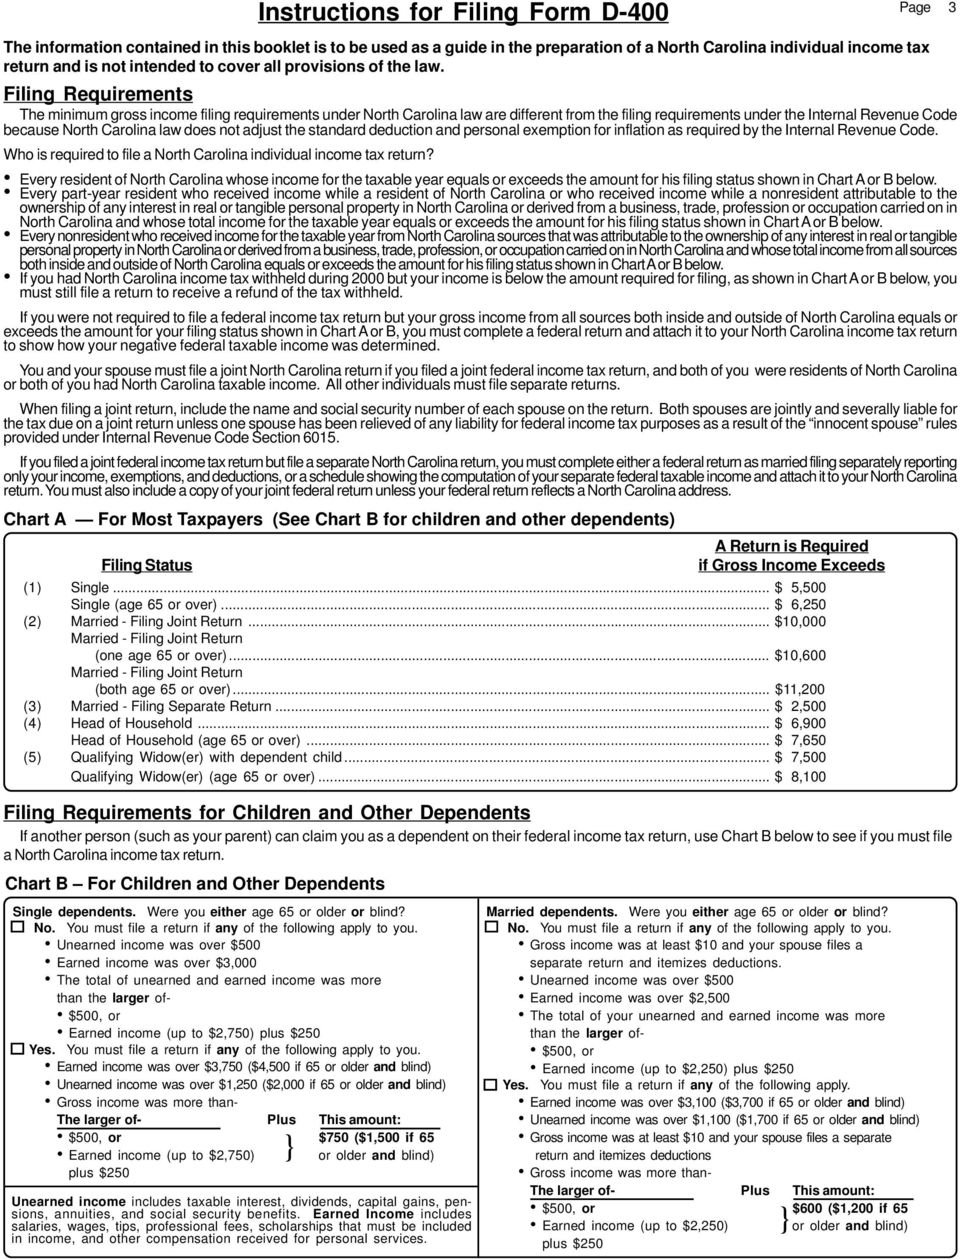 Worksheets Nc Child Support Worksheet A nc child support worksheet sharebrowse north carolina a photos beatlesblogcarnival